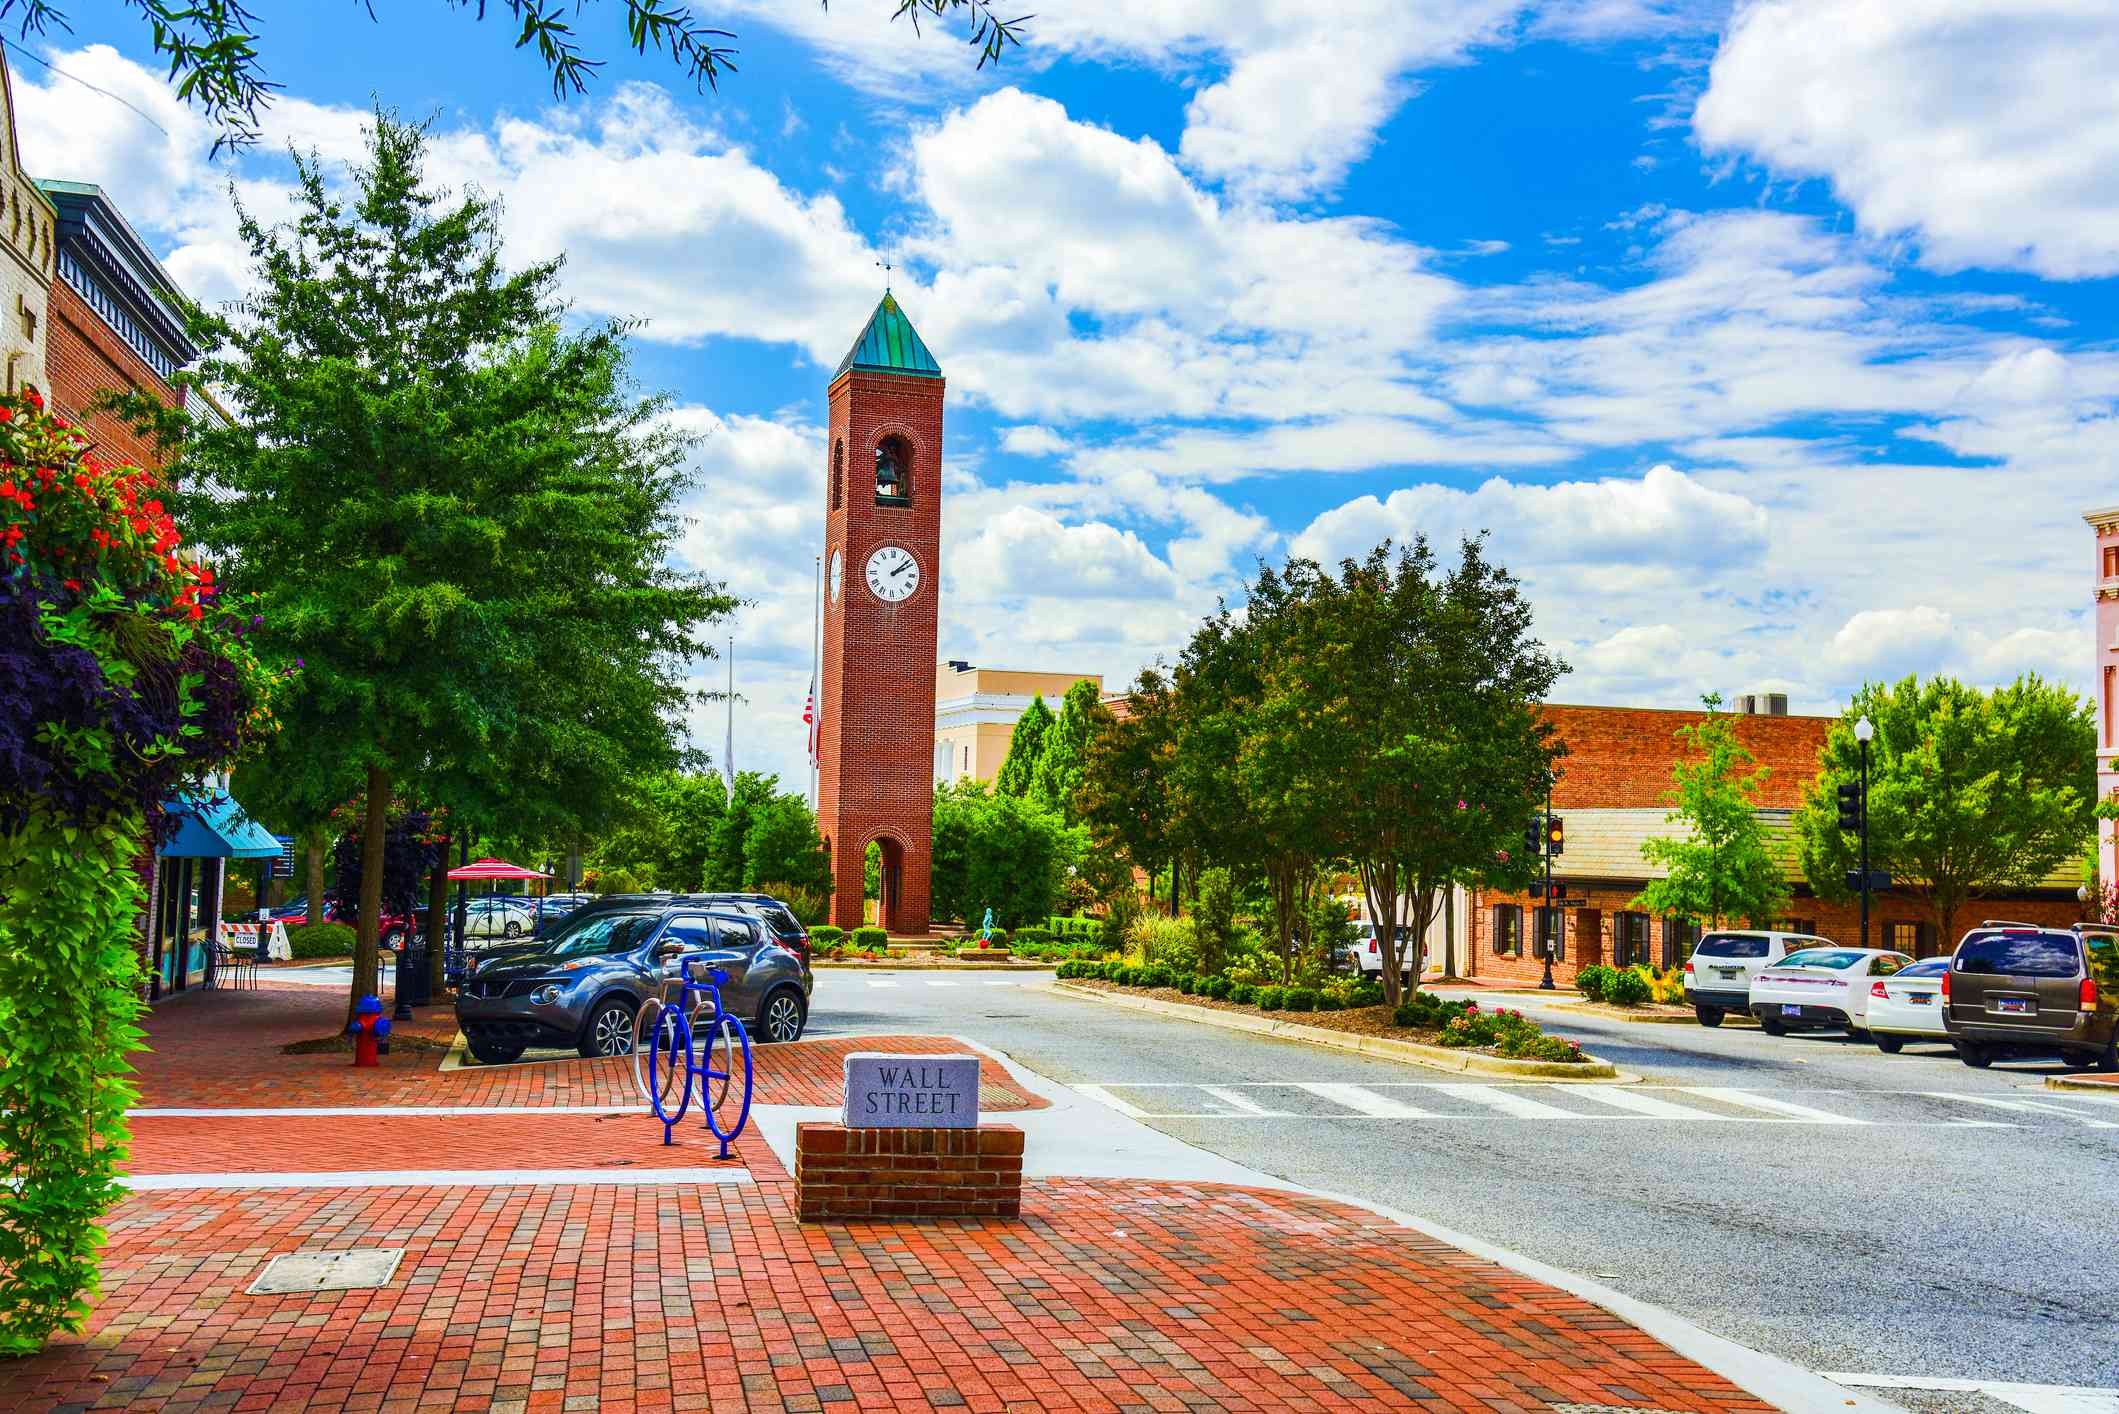 Highly saturated imaged of a brick clocktower on a tree lined street